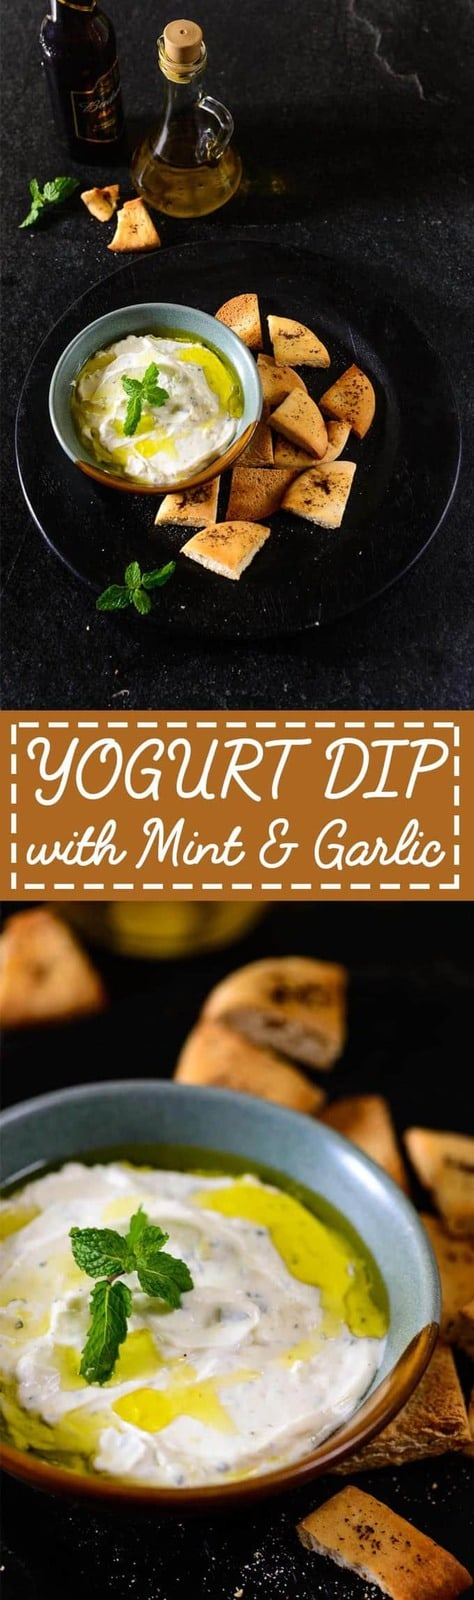 Yogurt dip with Mint and Garlic